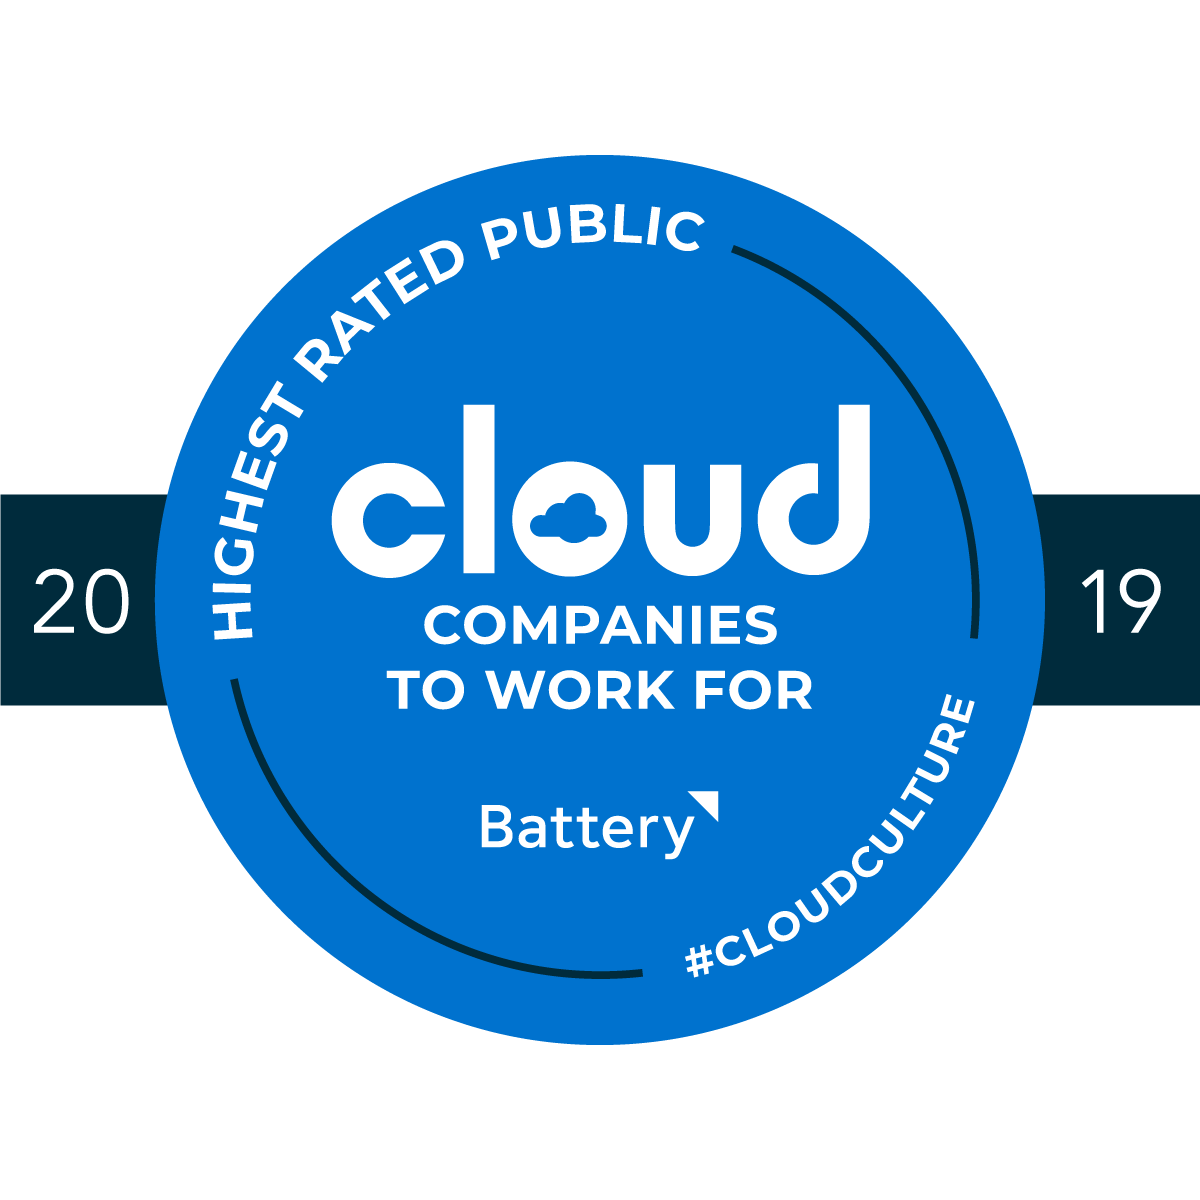 #cloudculture badge